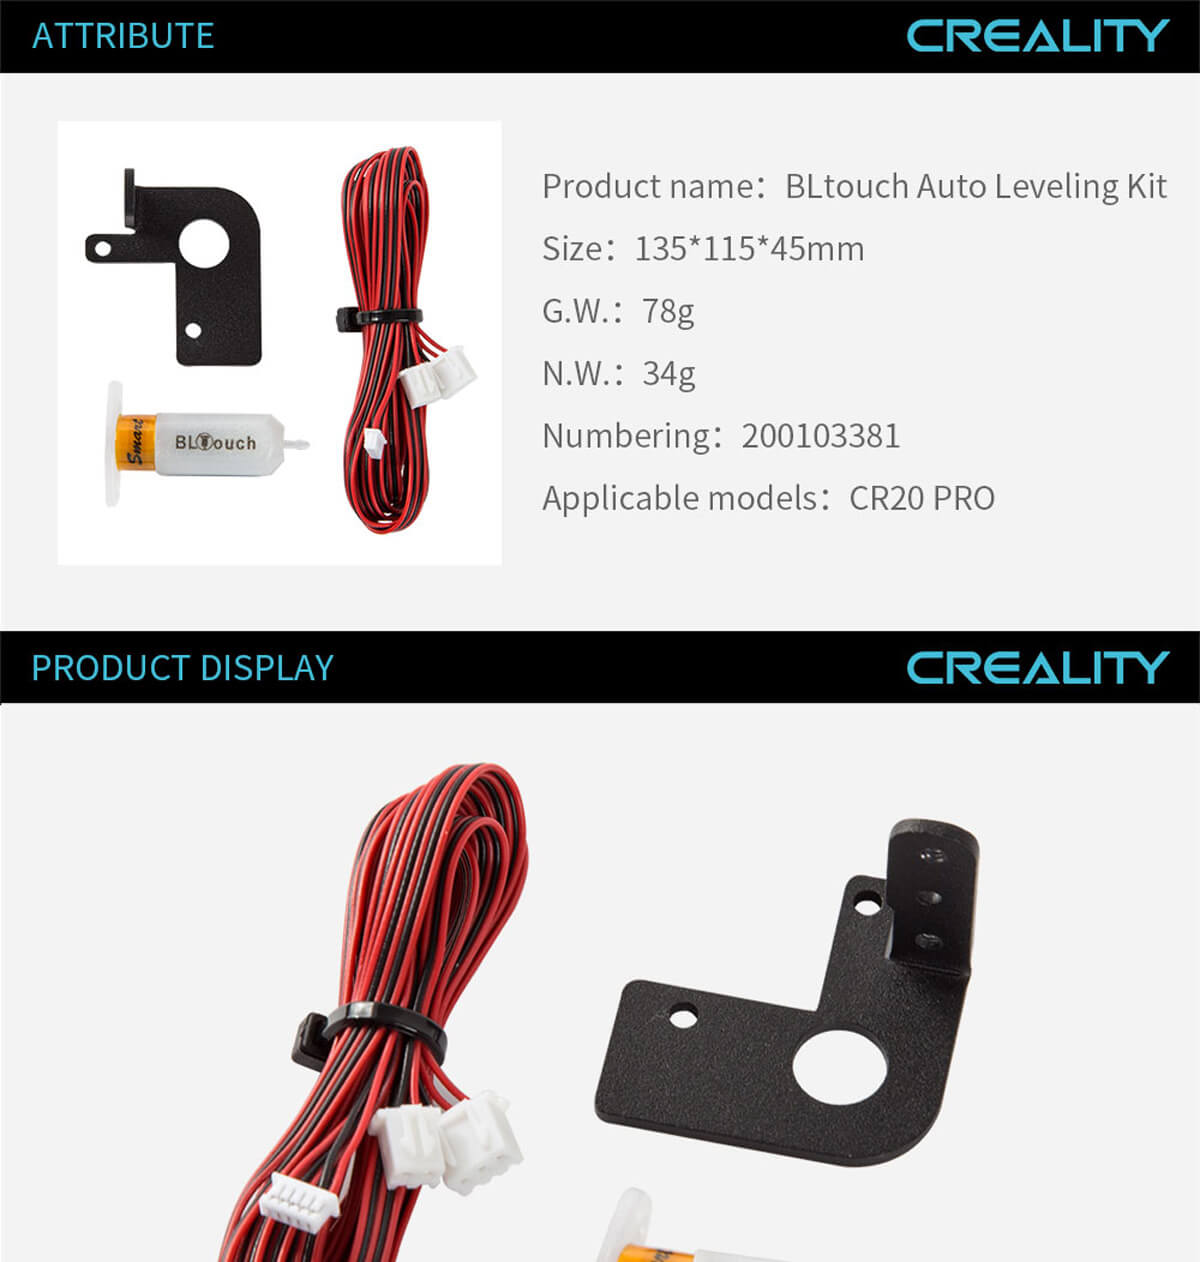 creality-3d-bLtouch-auto-leveling-kit-11